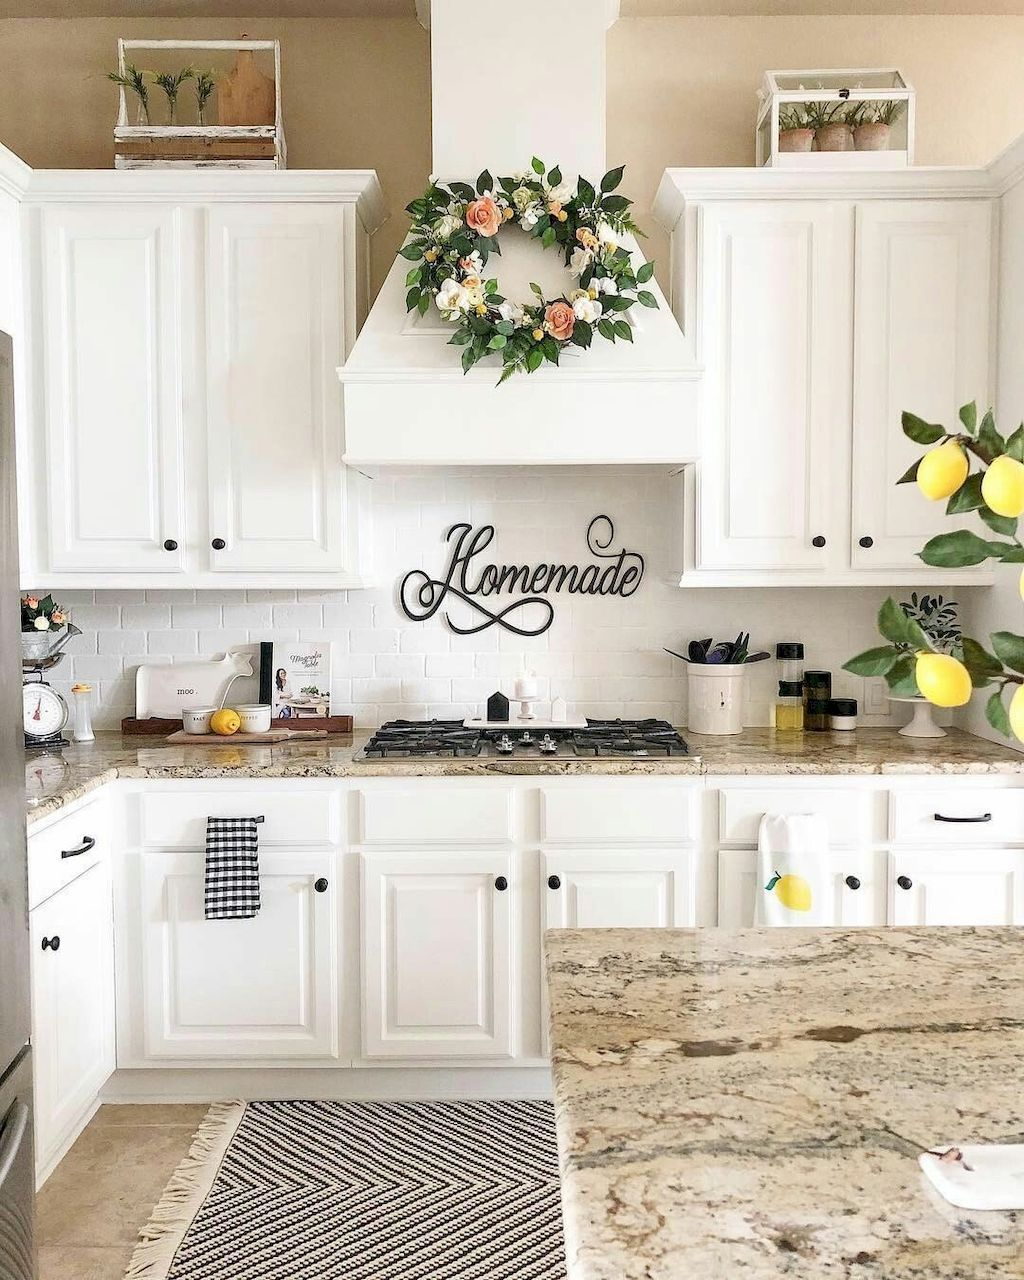 beautiful farmhouse kitchen backsplash design ideas 06 farmhouse kitchen decor home decor on farmhouse kitchen backsplash id=19489